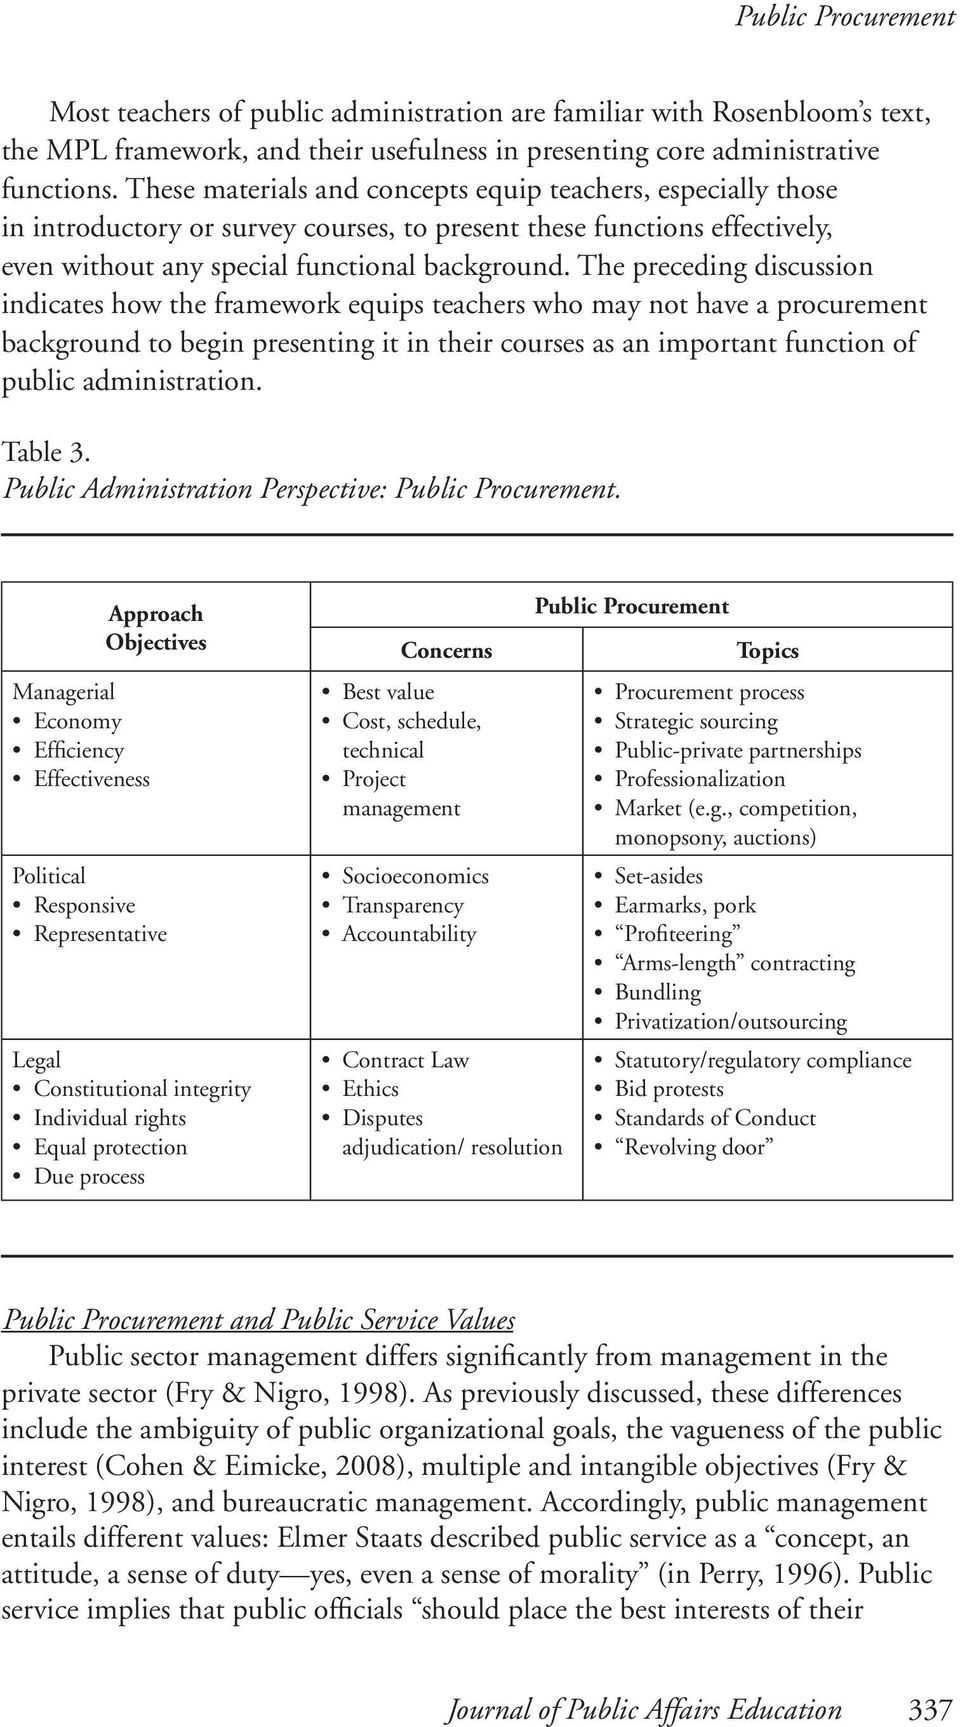 The preceding discussion indicates how the framework equips teachers who may not have a procurement background to begin presenting it in their courses as an important function of public